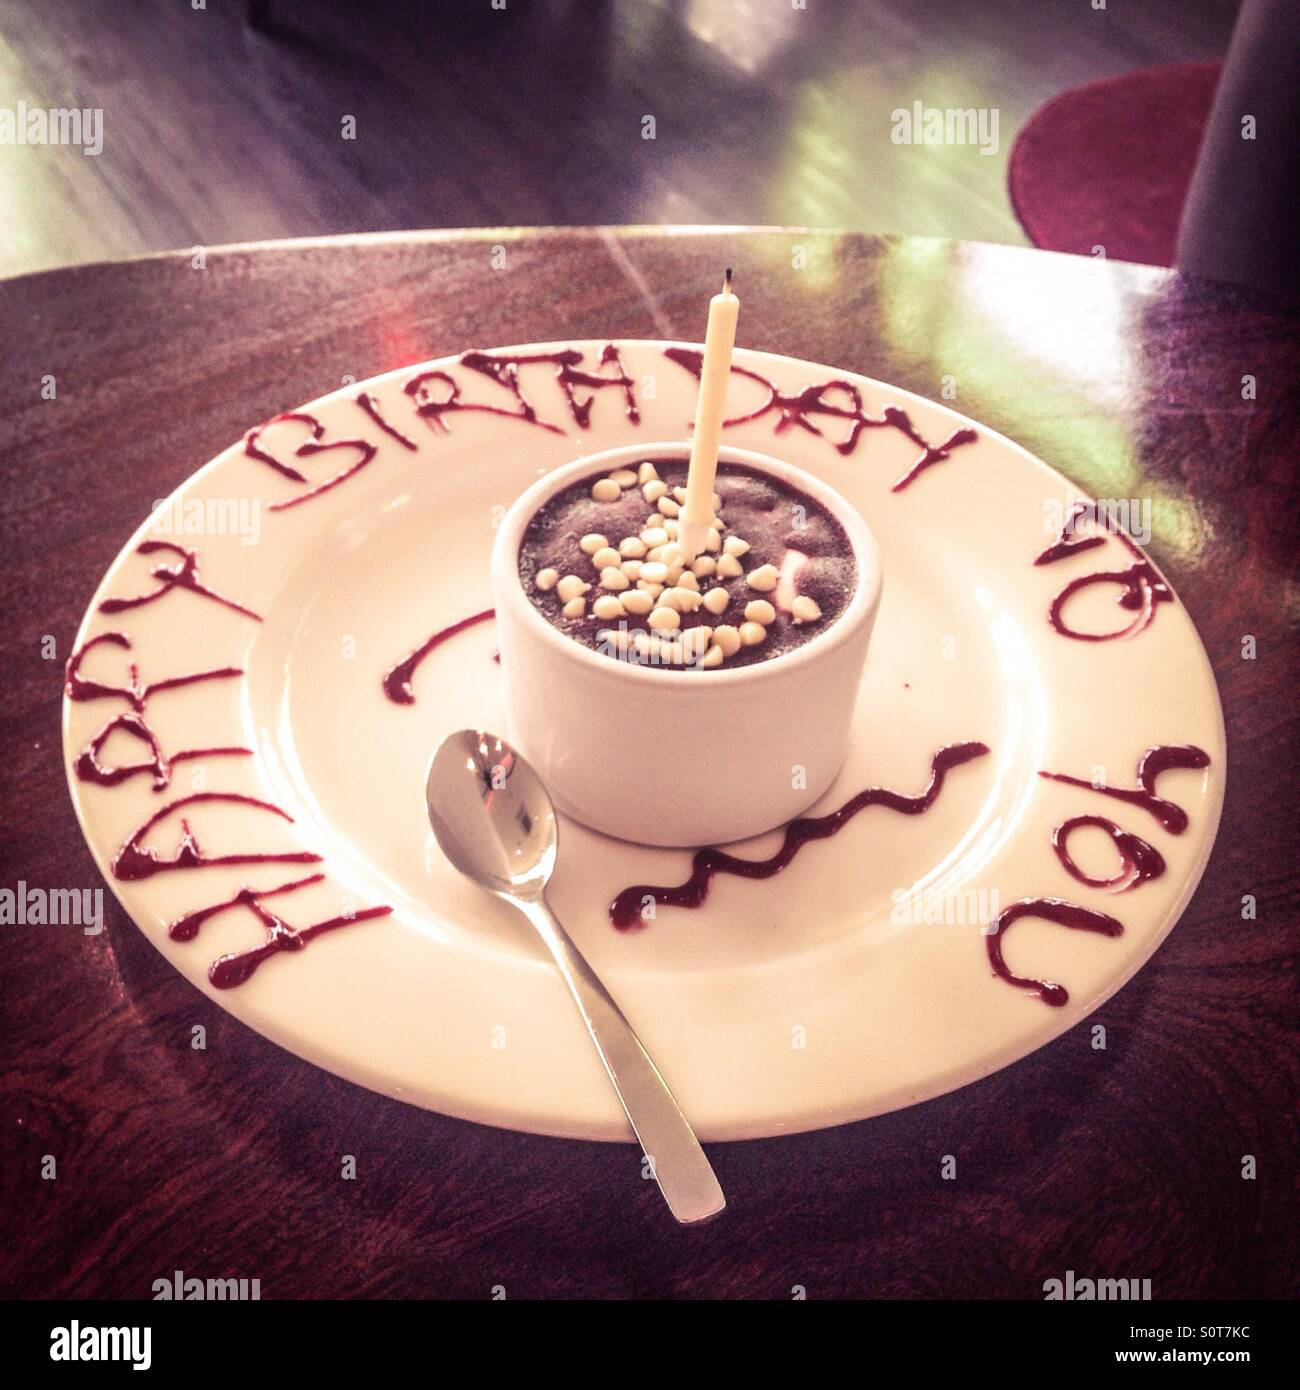 Happy Birthday To You Written On A Plate With Chocolate Sauce And Small Cake In Dish One Candle Spoon Wooden Table